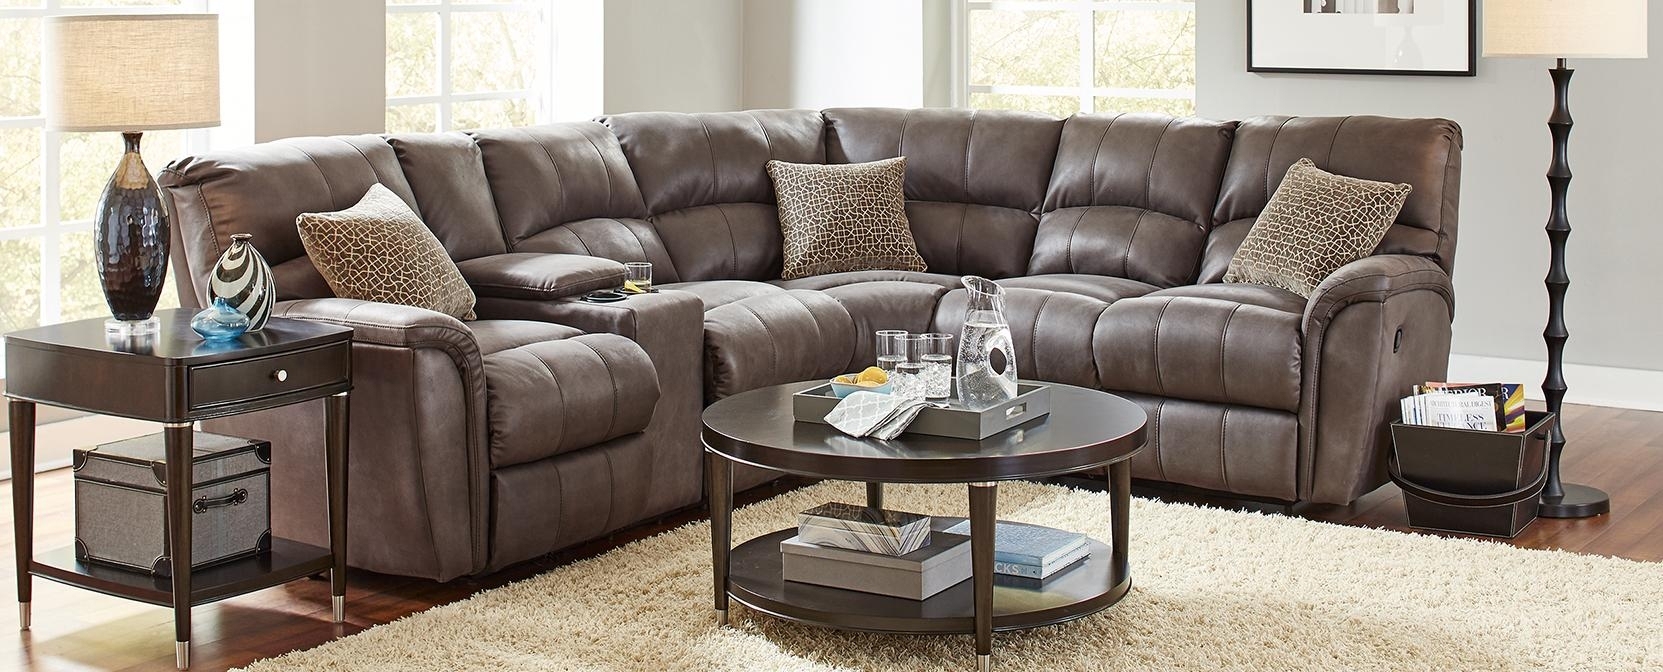 Sectional Couches | Living Room Sectionals | Lane Furniture | Lane With Lane Furniture Sofas (Image 19 of 20)